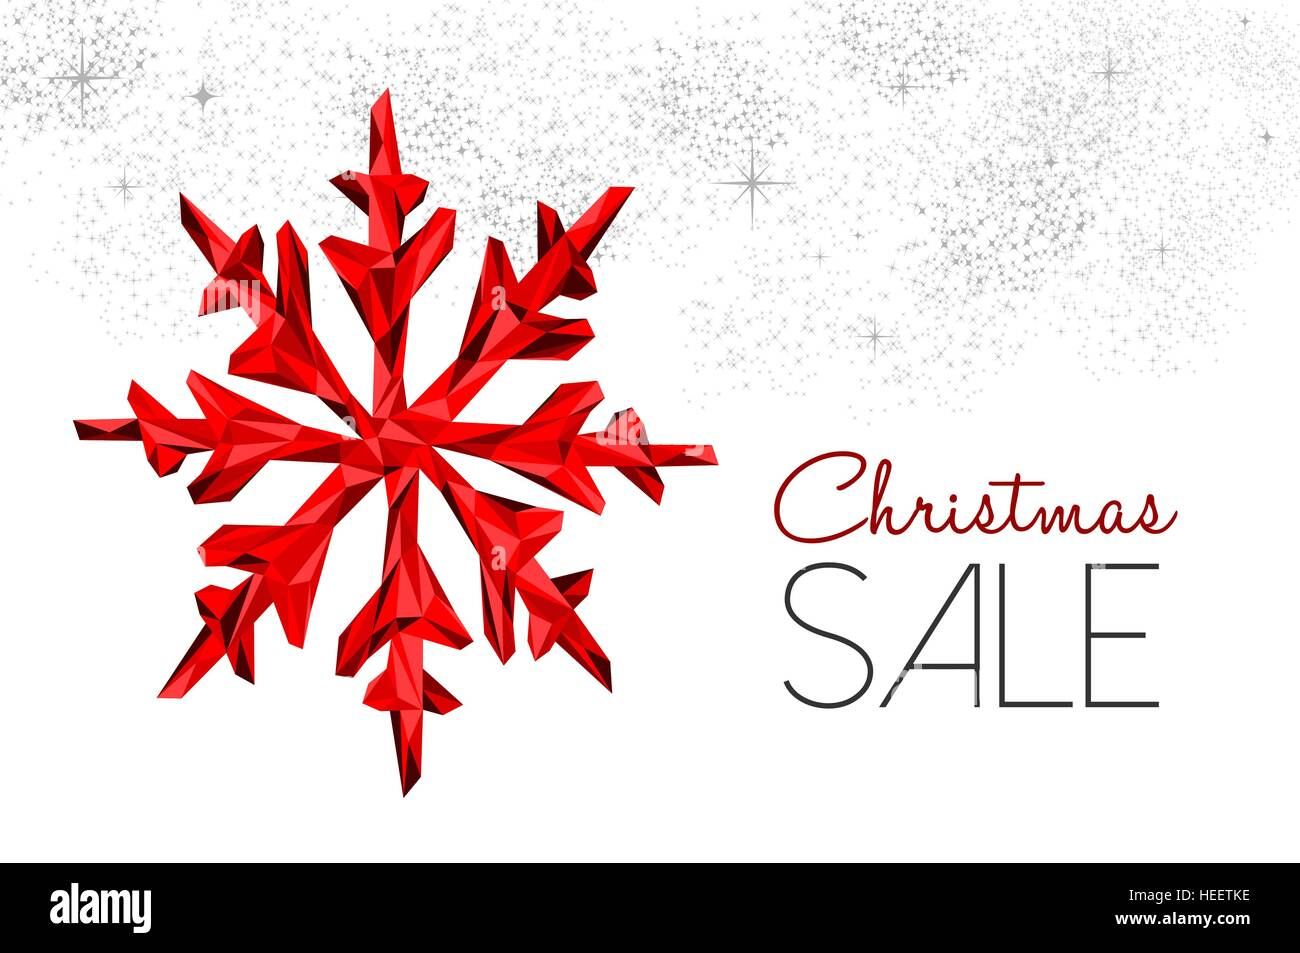 Christmas sale red winter holiday decoration for seasonal discount